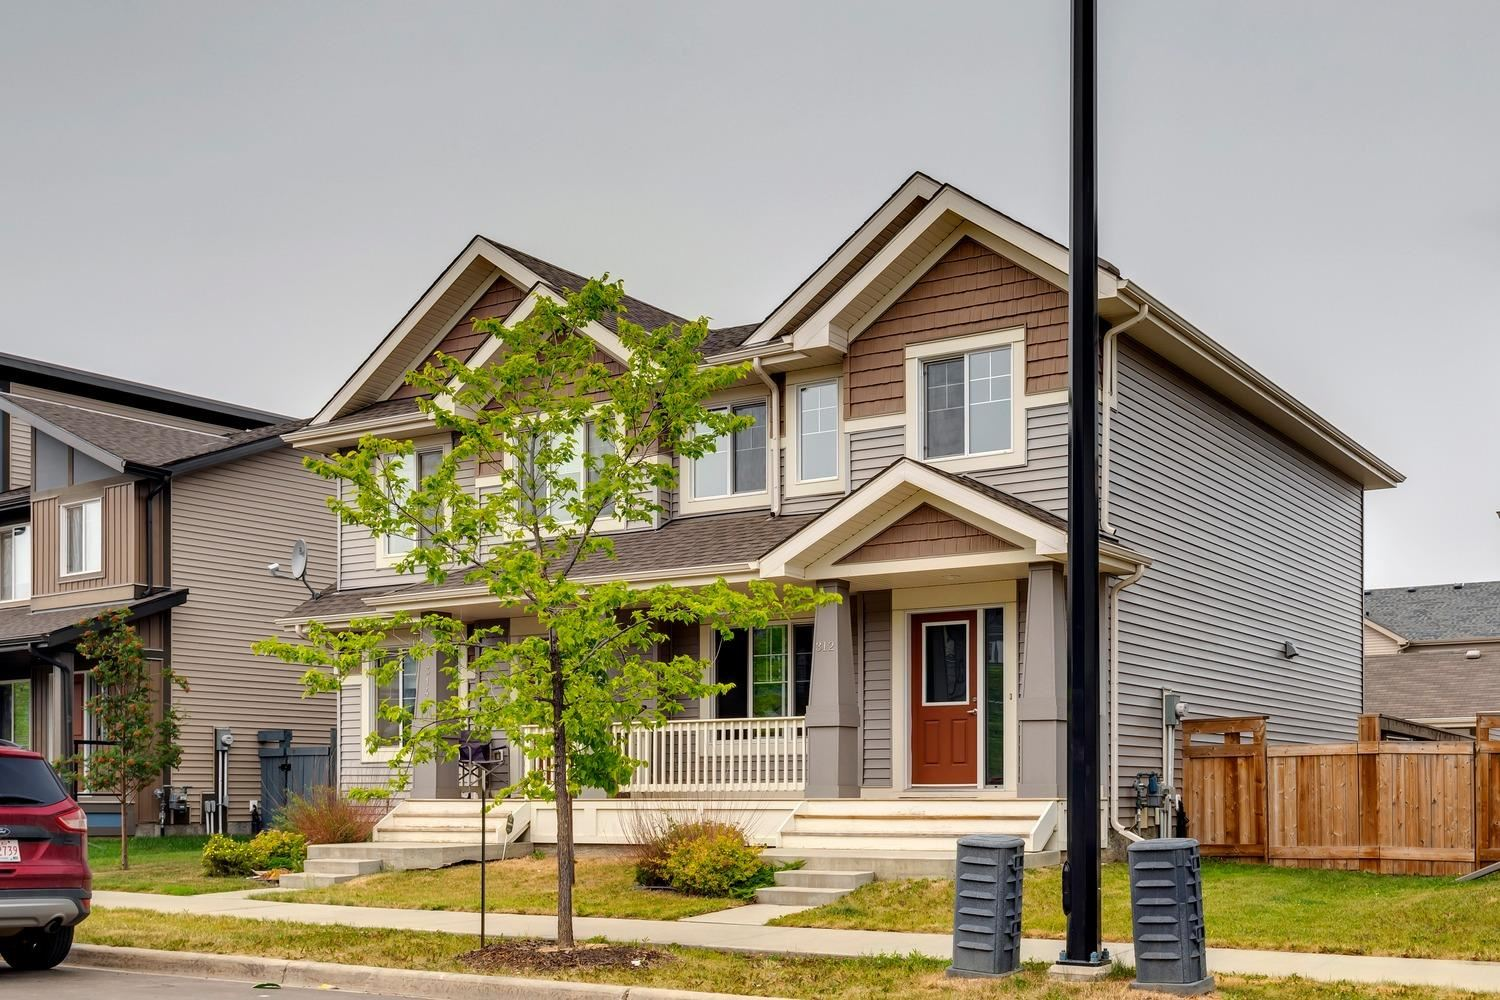 Welcome to the energetic community of Desrochers! Why build when you can just move in and enjoy this 1320+ sqft energy efficient duplex. The main floor offers an open floor plan, spacious kitchen w/large island, s.s. appliances, and premium cabinetry. Large living area w/bright windows, spacious dining area that leads to your fully fenced/landscaped yard w/deck. Upstairs you will find 3 good sized bedrooms including the master suite complete w/3-pc ensuite and walk-in closet, additional 4-pc bath, and laundry area. Front porch area, double garage, and more. Located close to schools, walking trails, shopping, and other amenities. Great value in an better area!